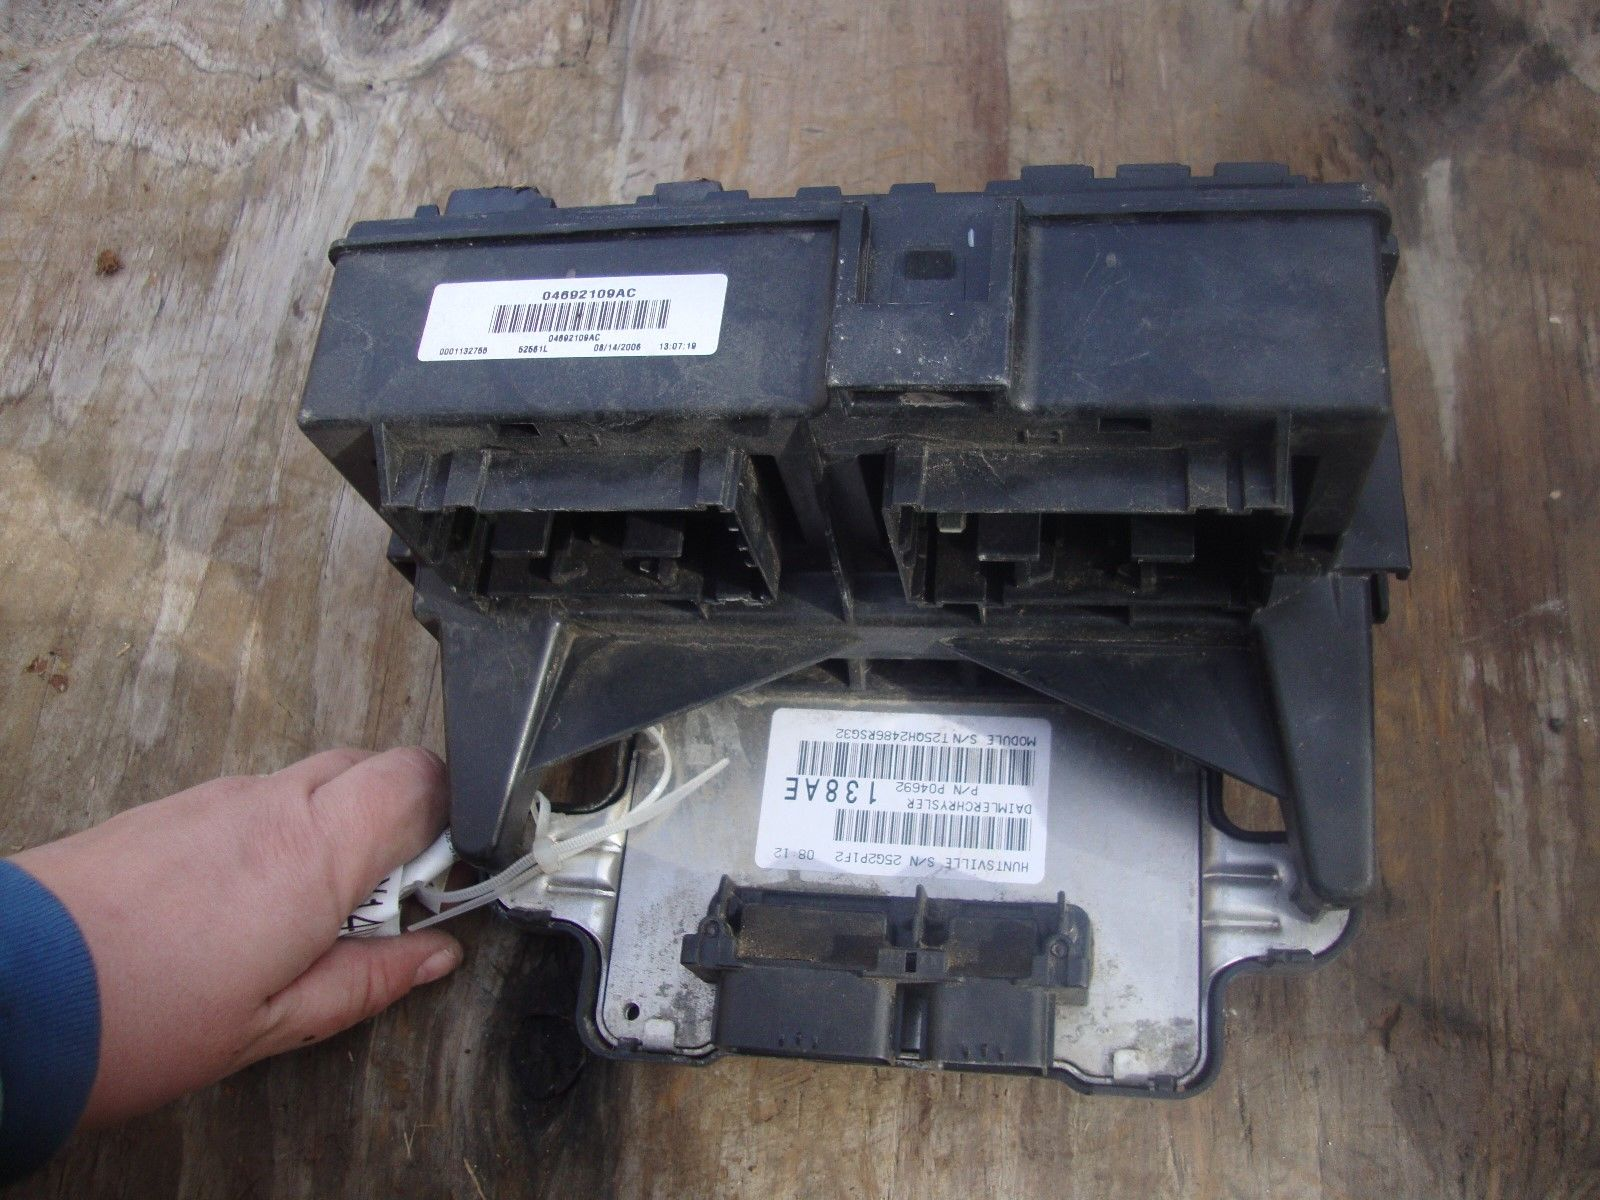 8e7cb129 da95 4b5e a502 e7d1fd960116 2007 jeep grand cherokee body control computer module fuse relay 2014 grand cherokee fuse box at n-0.co